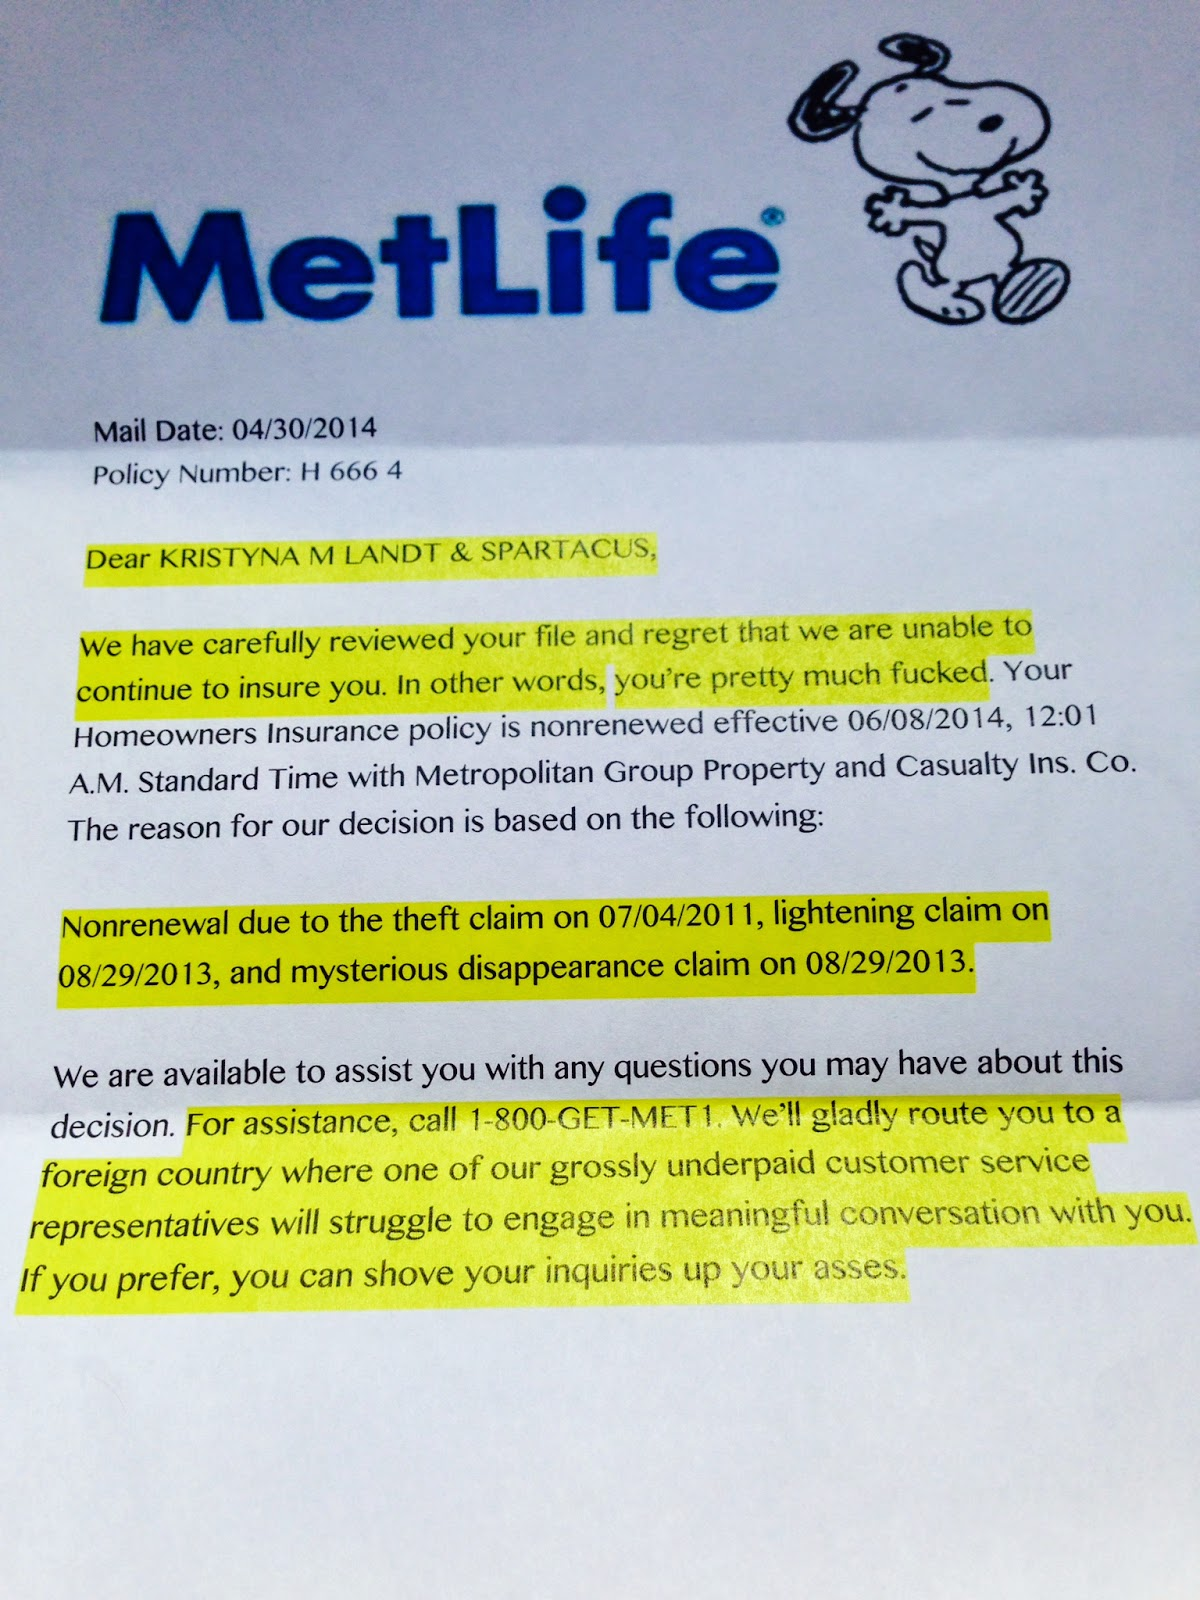 Metlife Property Insurance Customer Service